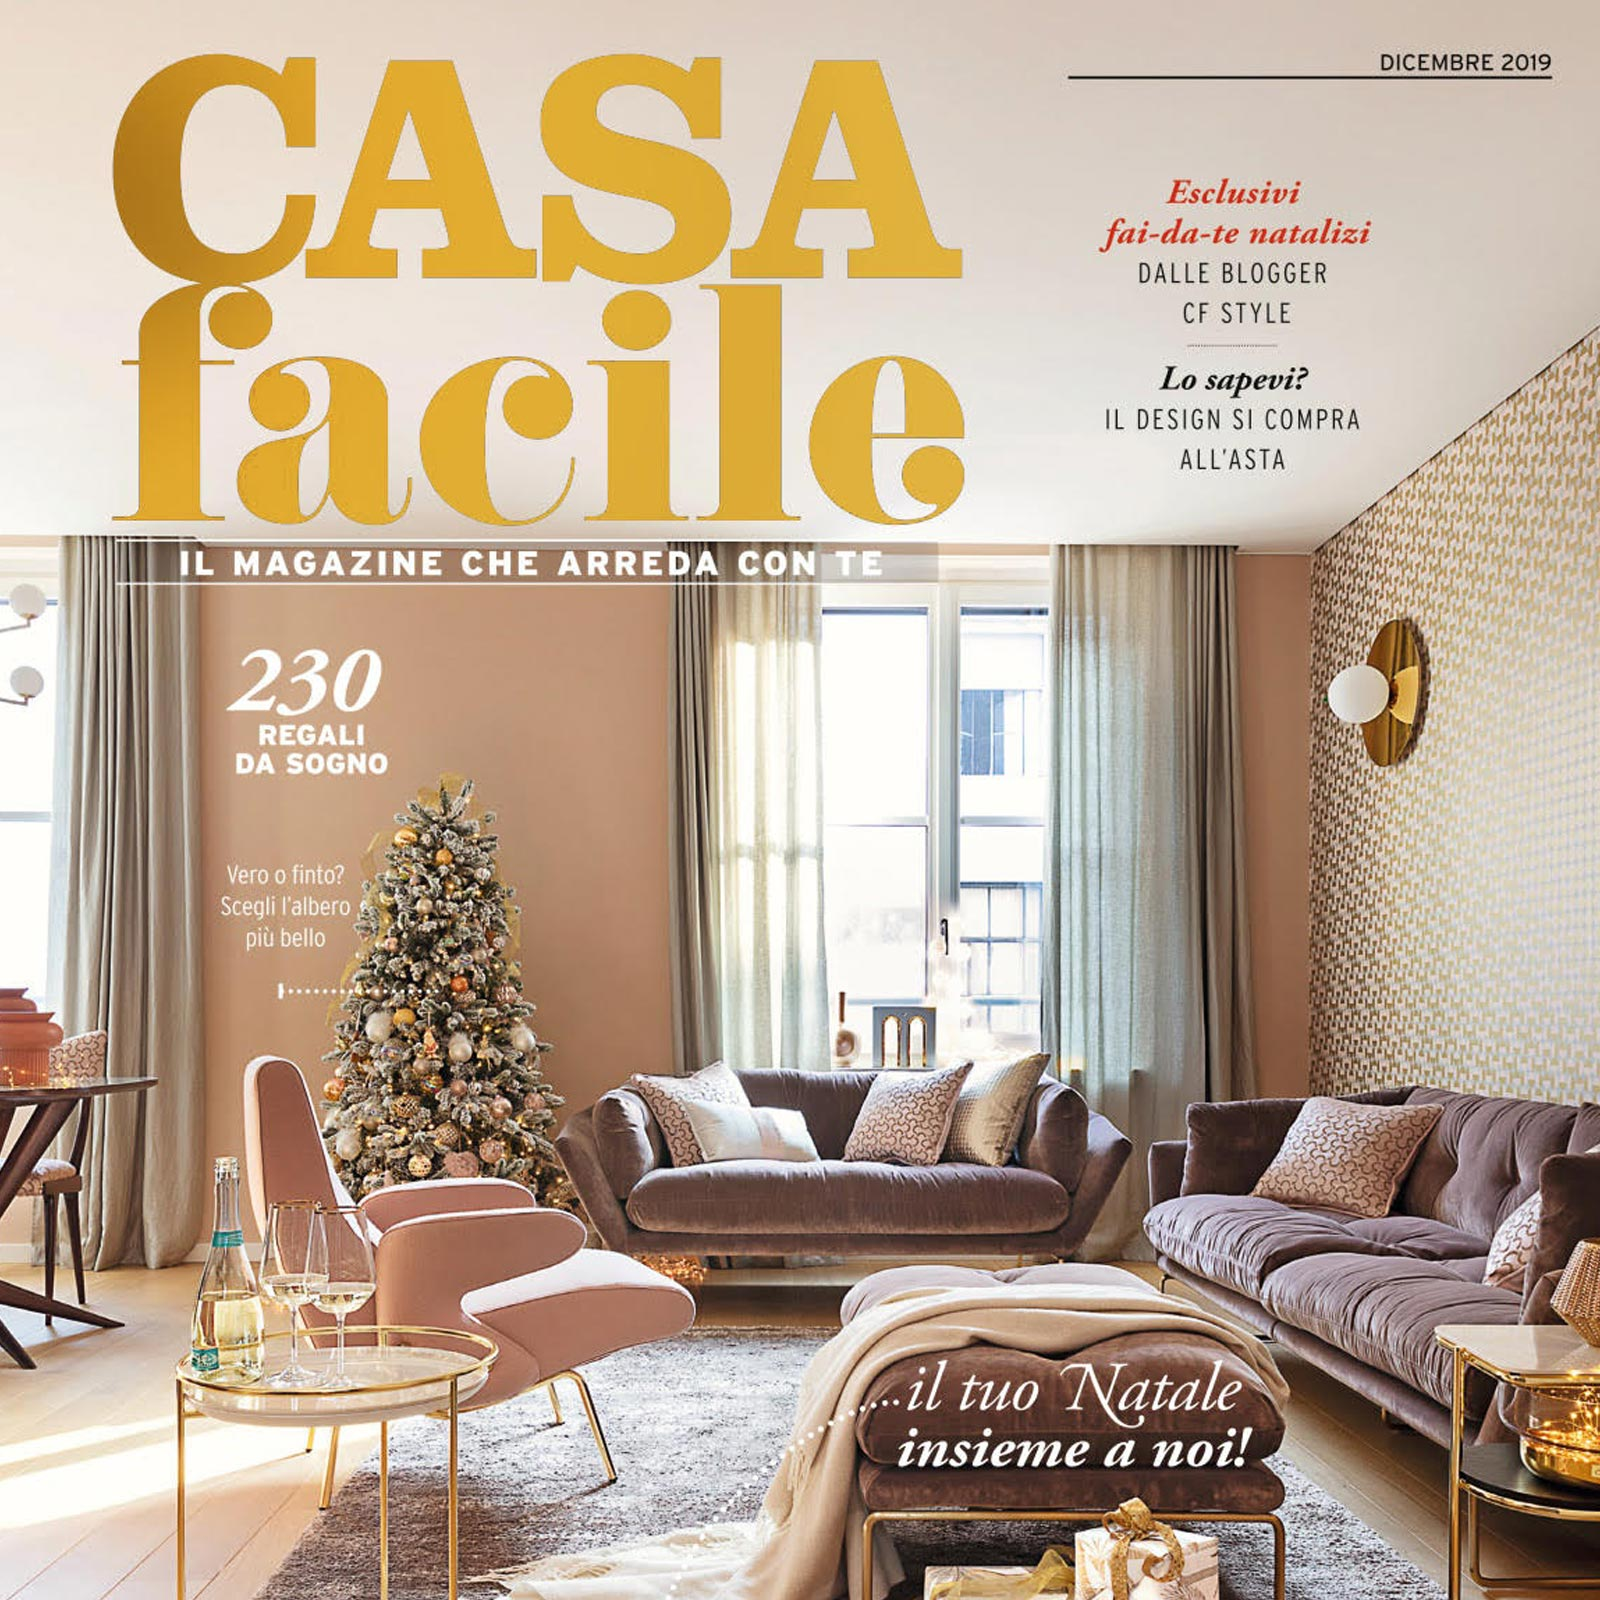 Made a Mano Press - Casa Facile Dicembre 2019 - komon Natura